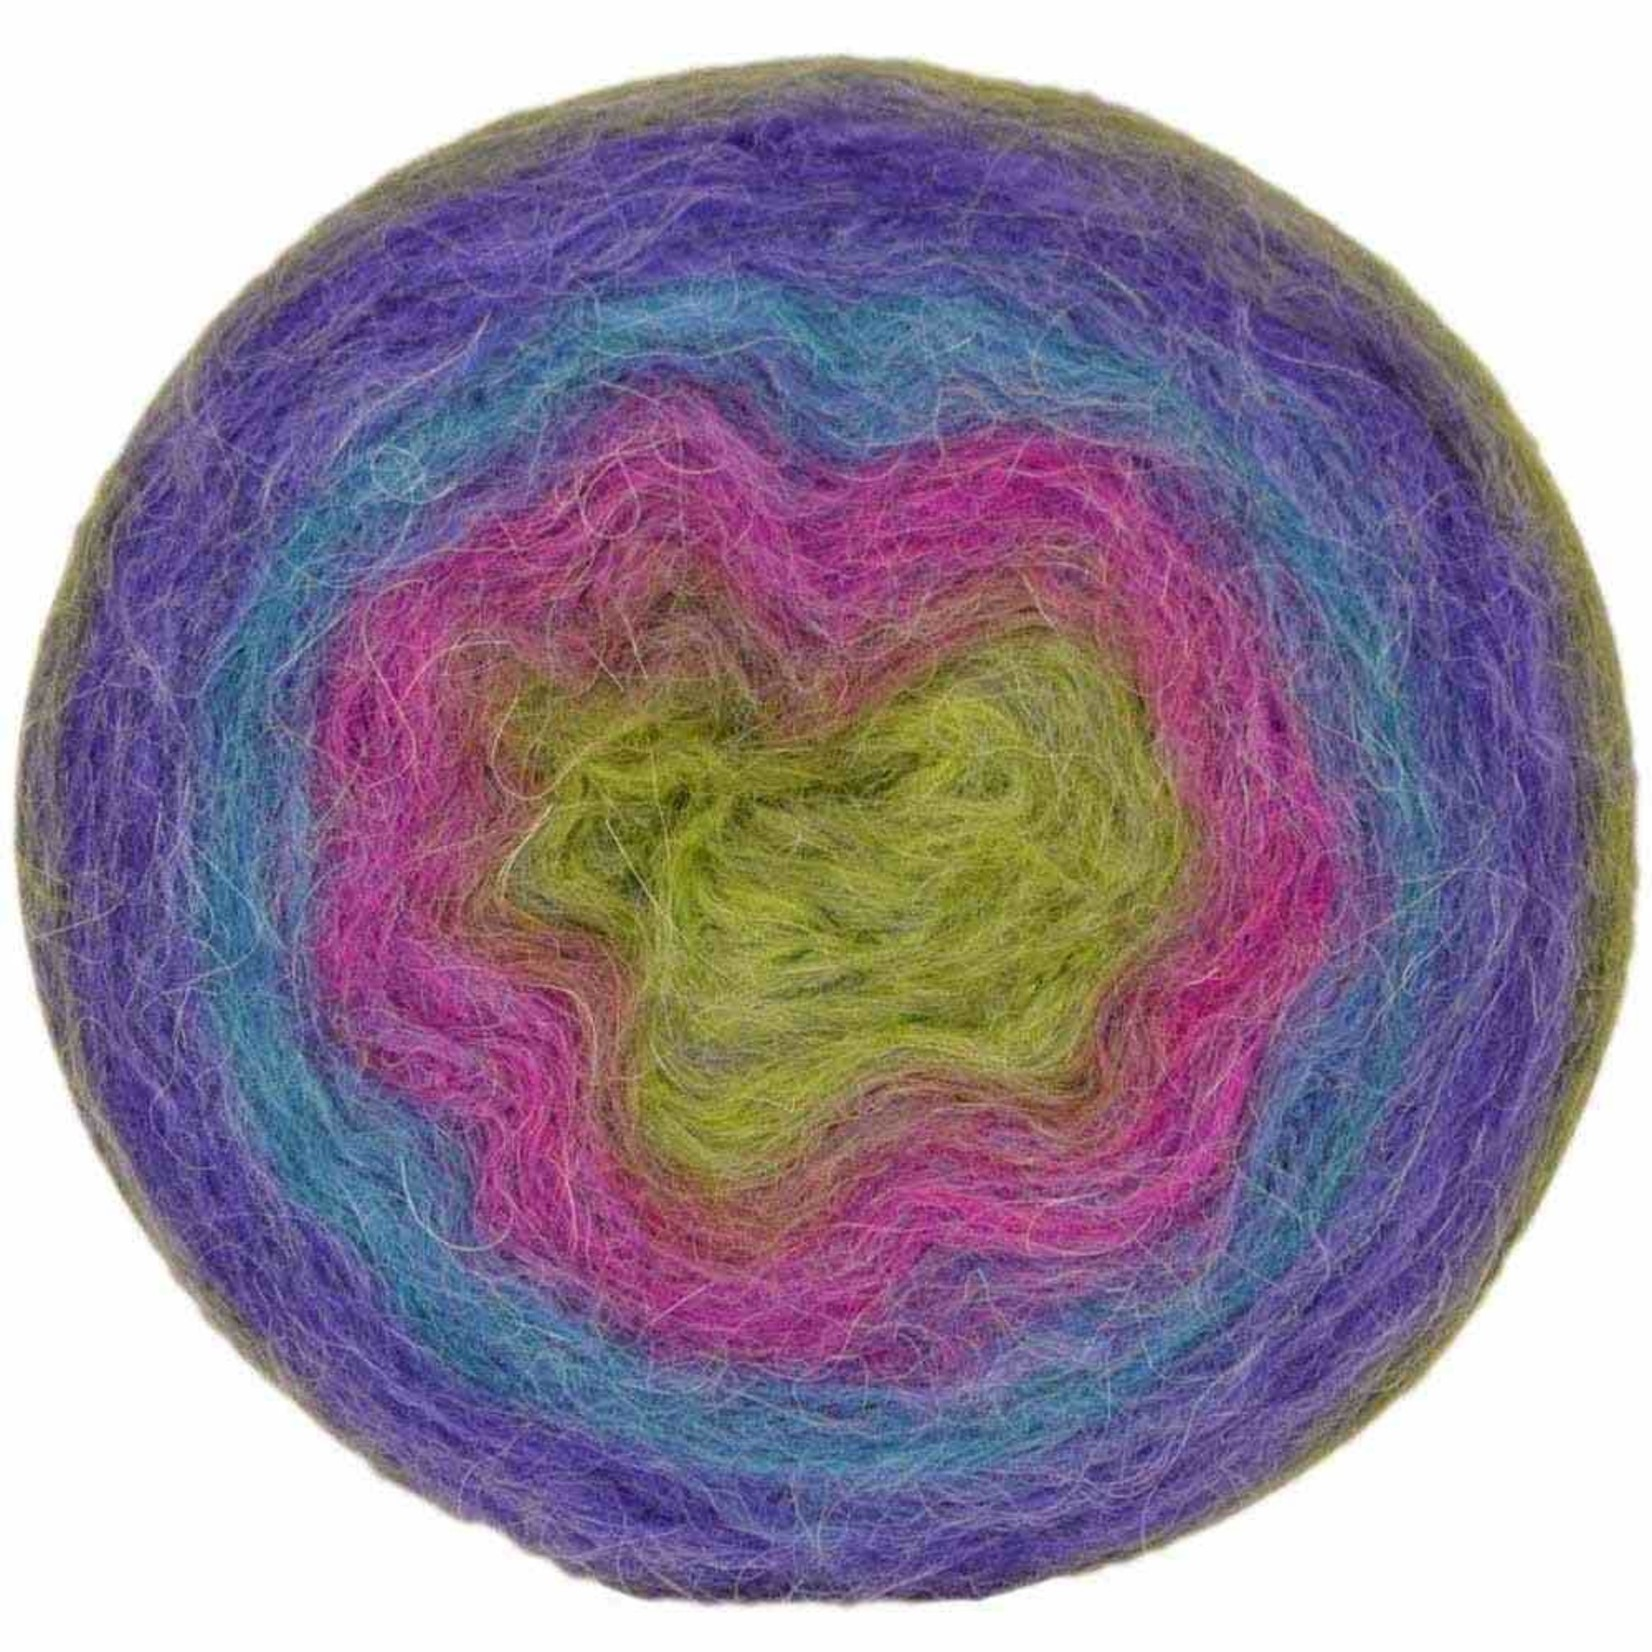 Universal Yarns Revolutions 200g - Bulky Weight 5 - 560m (612yds) by UNIVERSAL